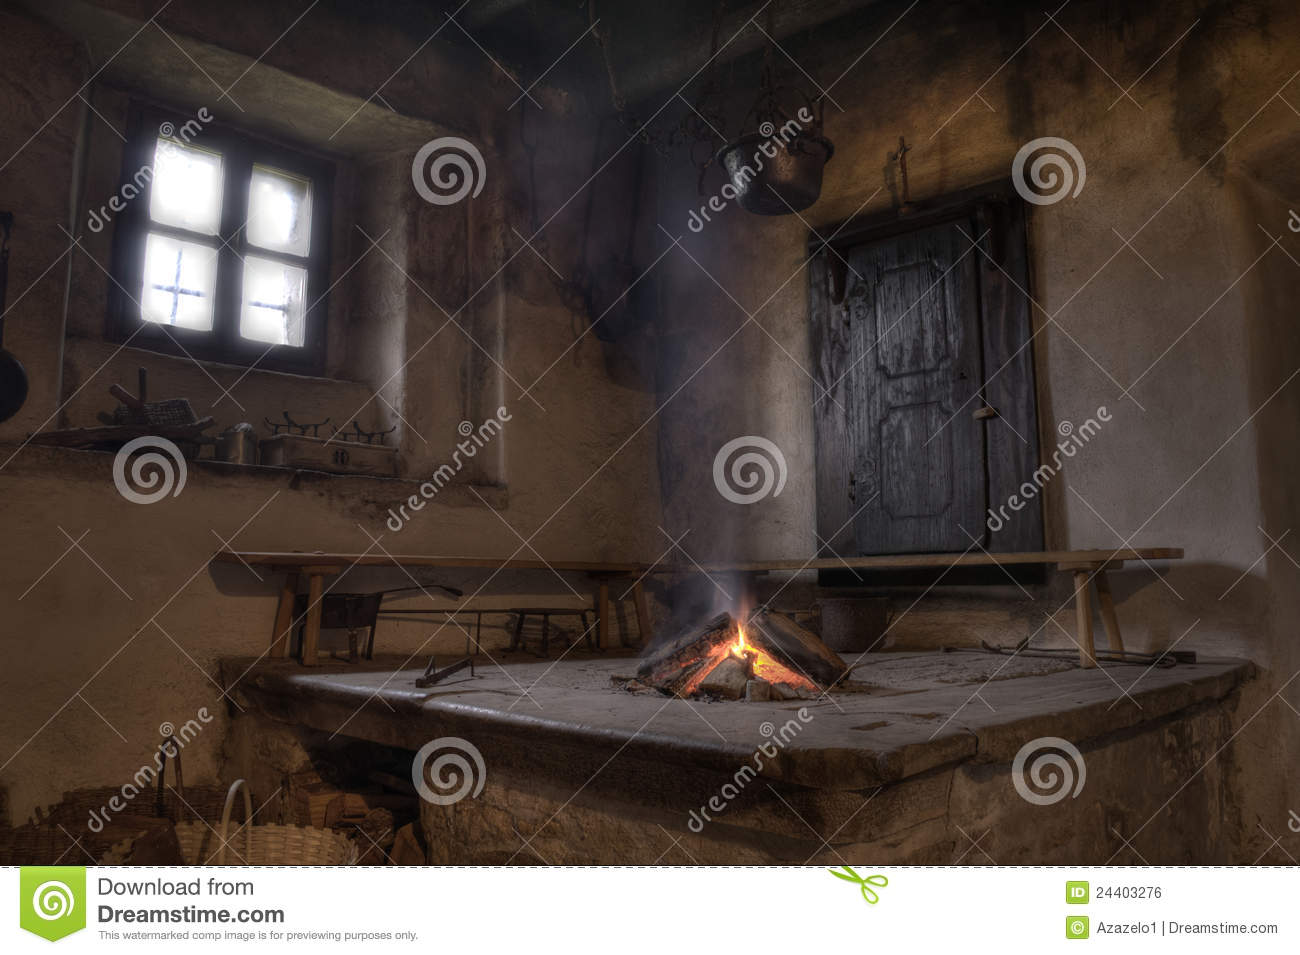 Cabin interior fireplace - Fireplace Rustic Pots Rural Window Inside